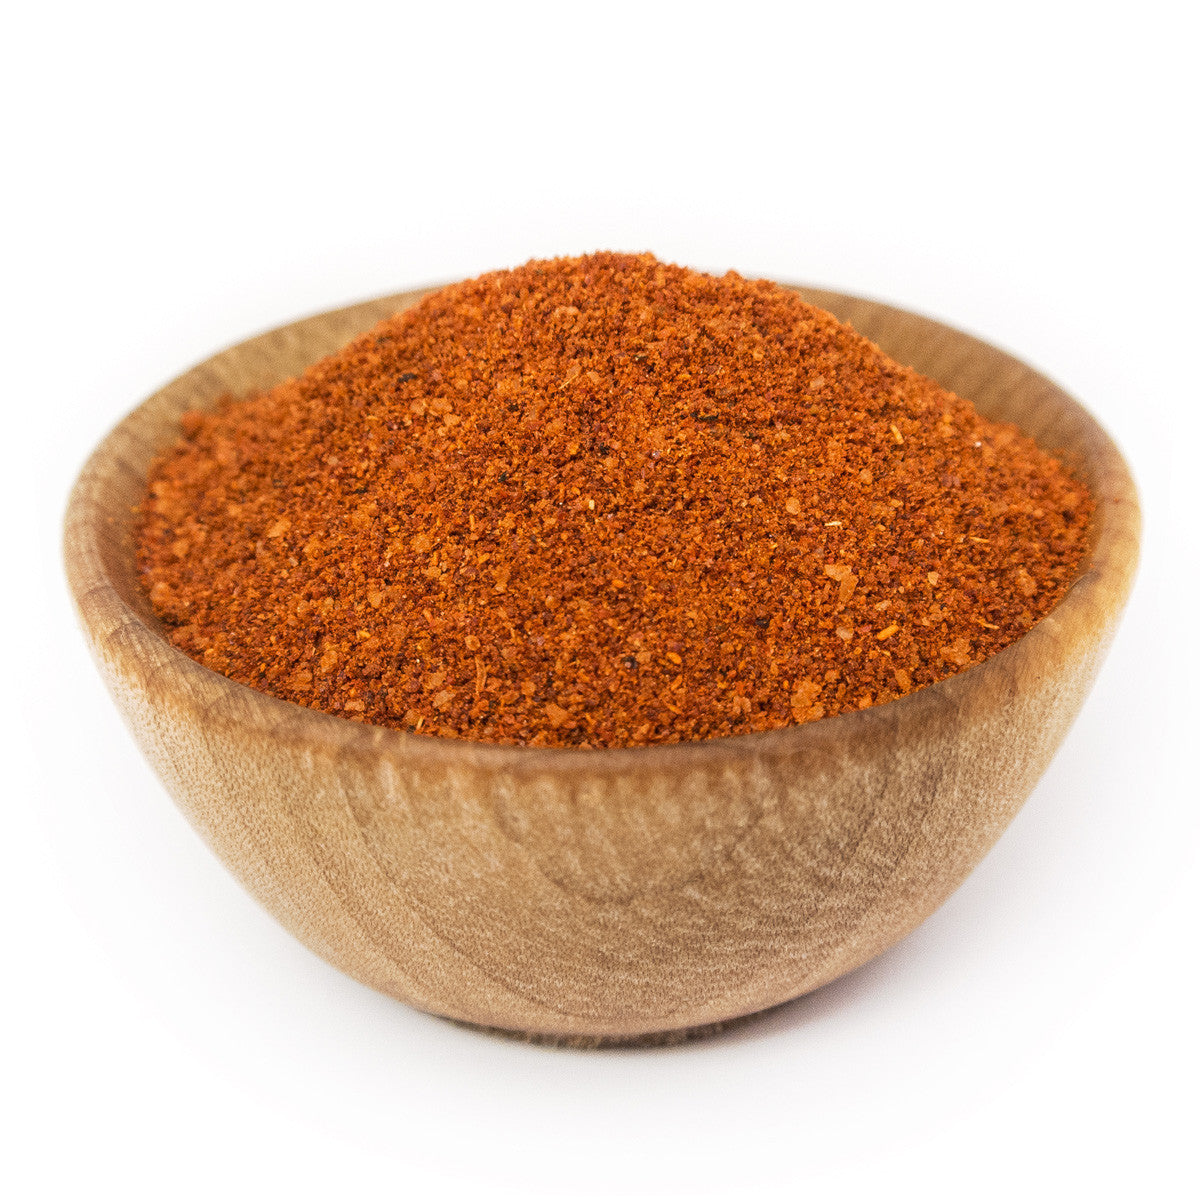 Moroccan Blend - Spice Rubs - Red Stick Spice Company